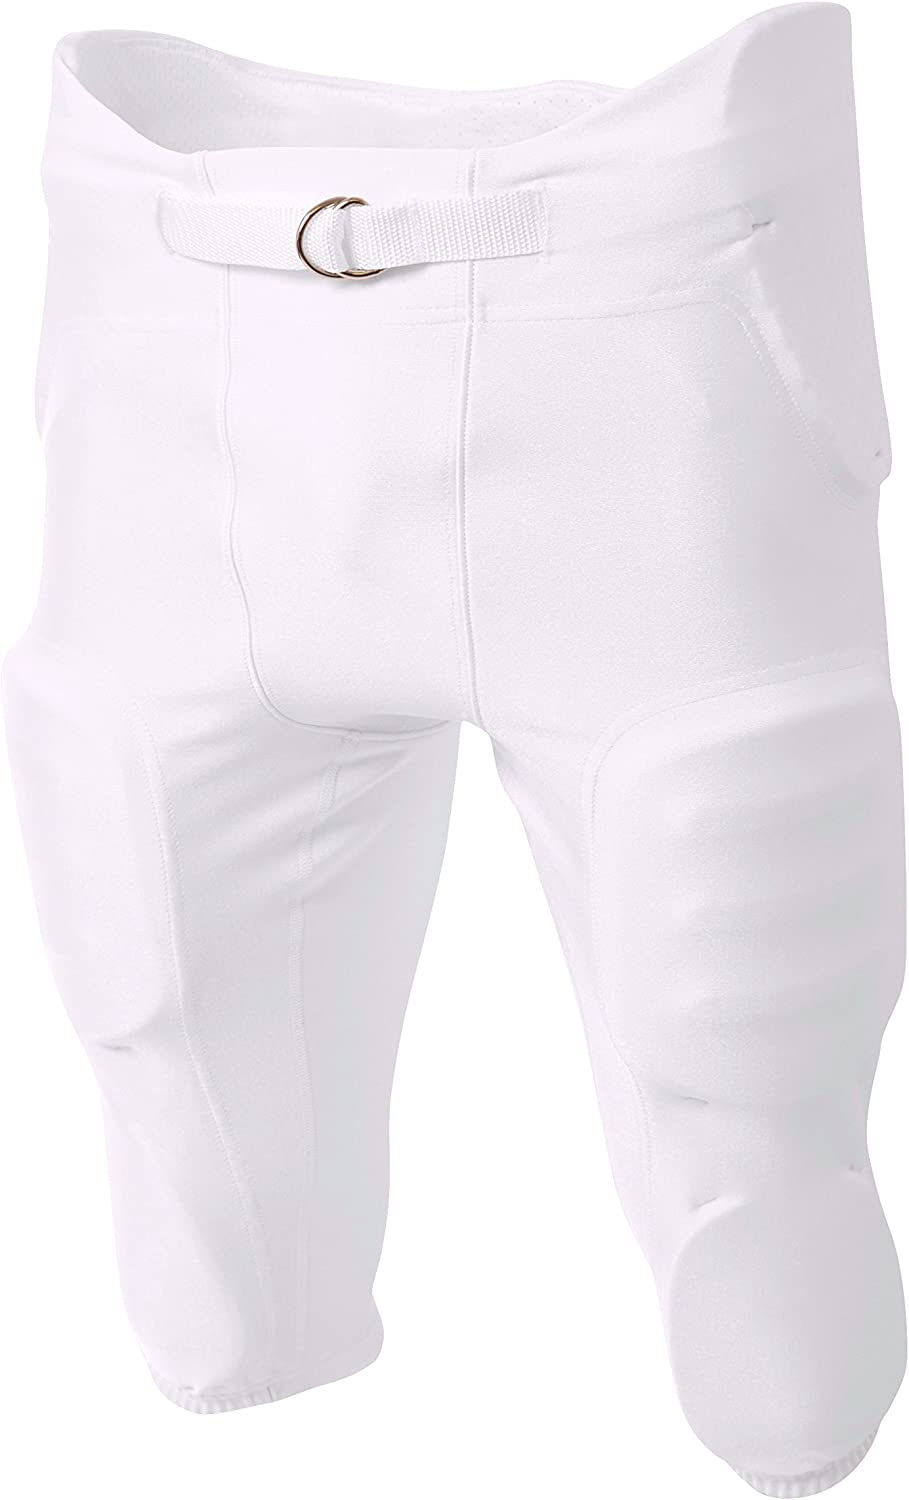 A4 Boy's Integrated Pant Football Zone Ultra-Cheap Deals 1 year warranty